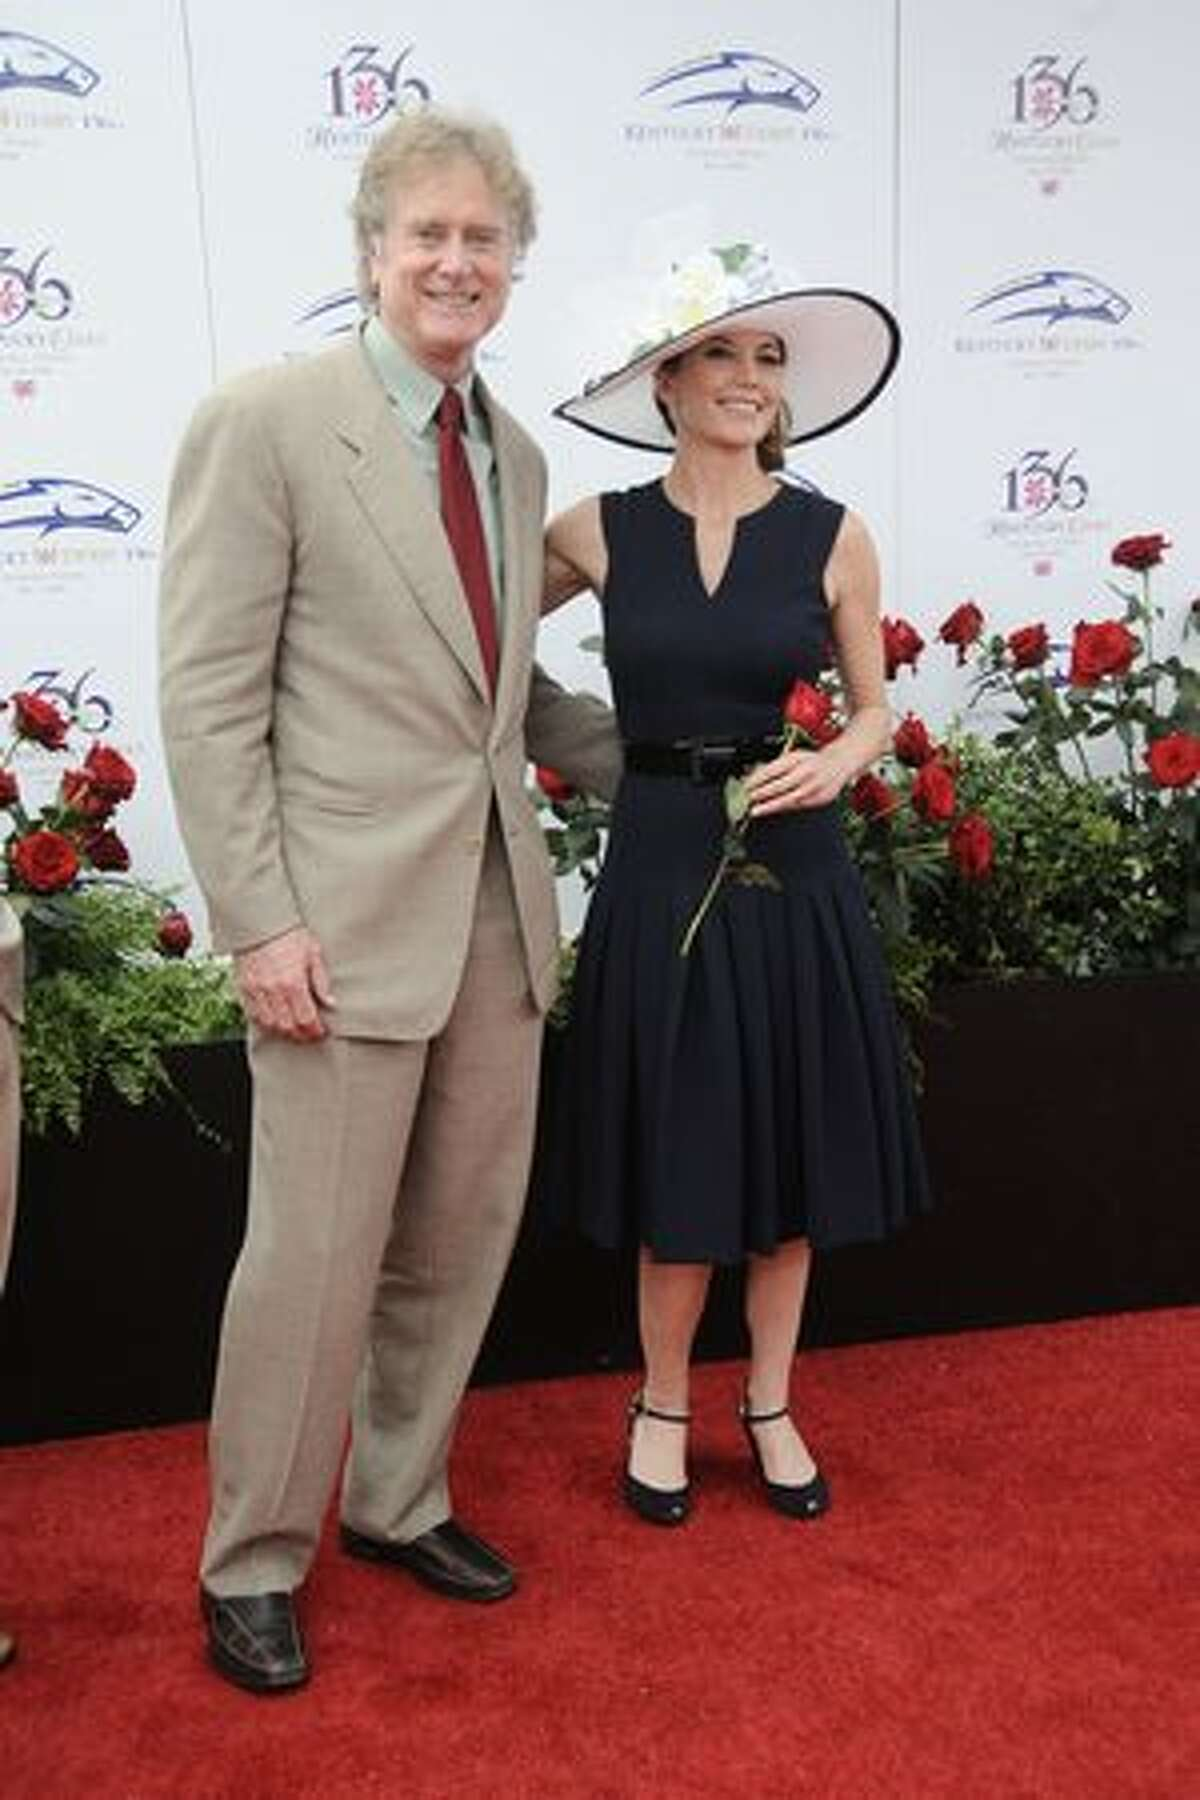 Actress Diane Lane and Director Randell Wallace attend the 136th Kentucky Derby in Louisville, Kentucky.